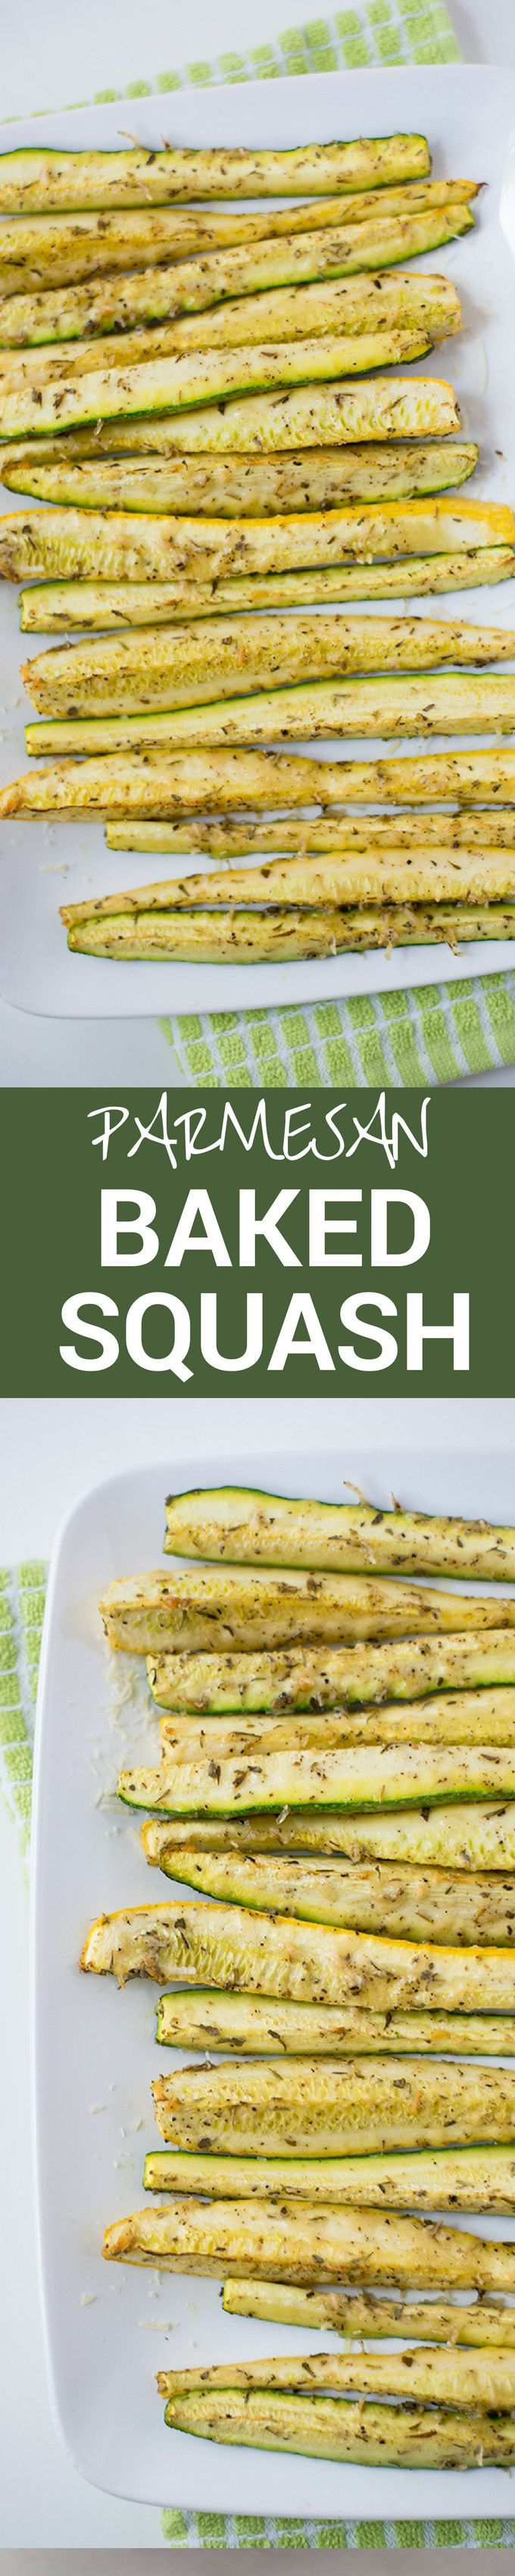 These Parmesan Bakes Squash And Zucchini Spears are so easy to make and are a great, healthy, and clean snack or dinner side.